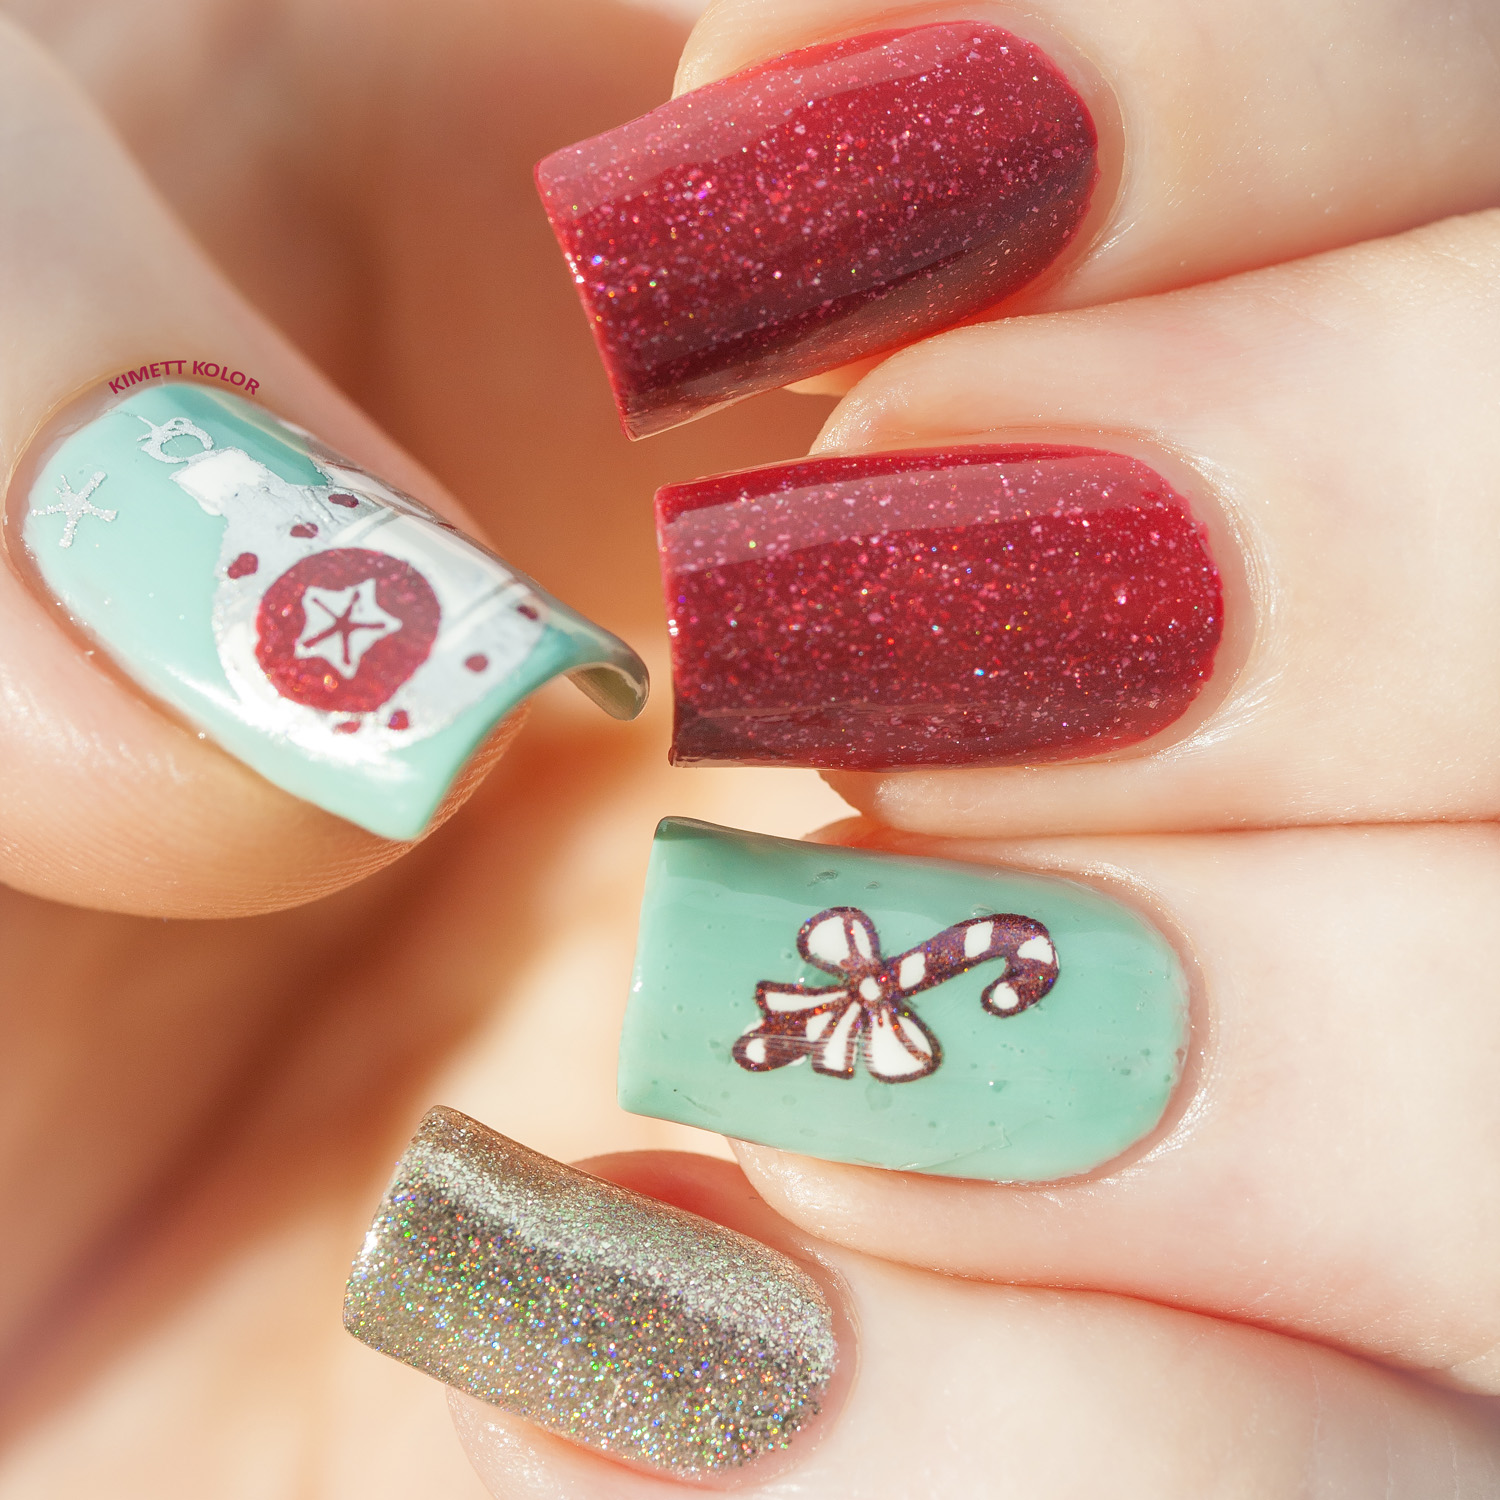 KimettKolor Vintage Christmas Nails